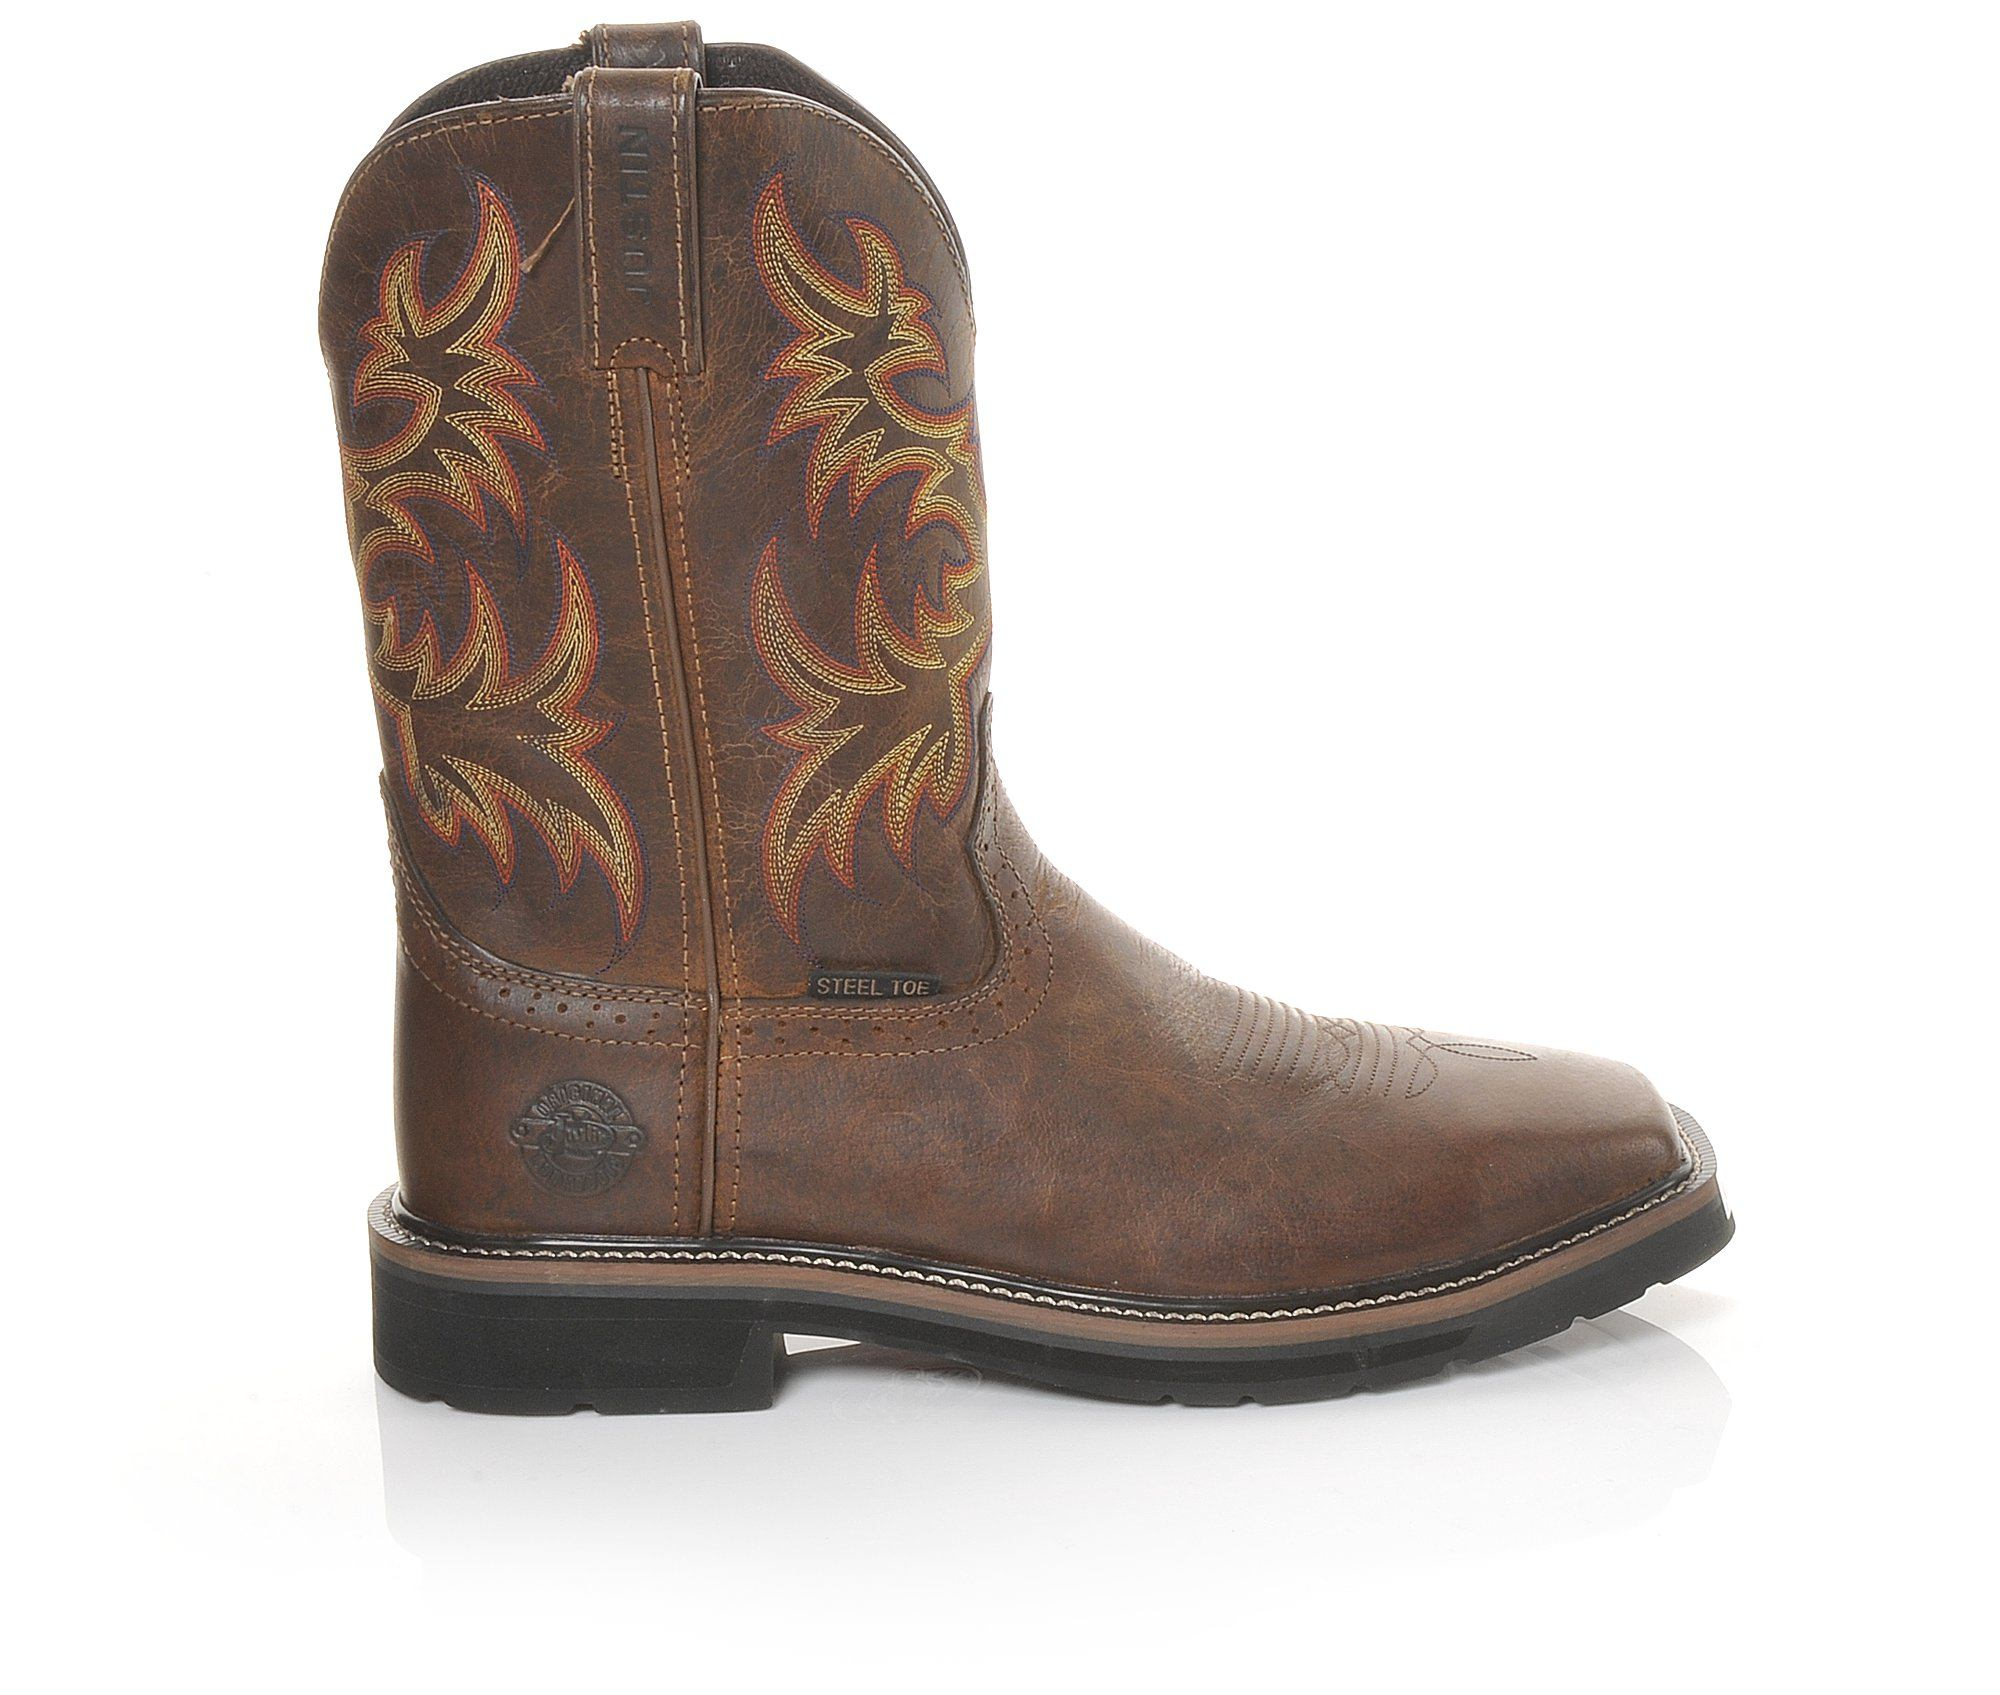 Justin Boots WK4682 Stampede Steel Toe Men's Boots (Brown Leather)